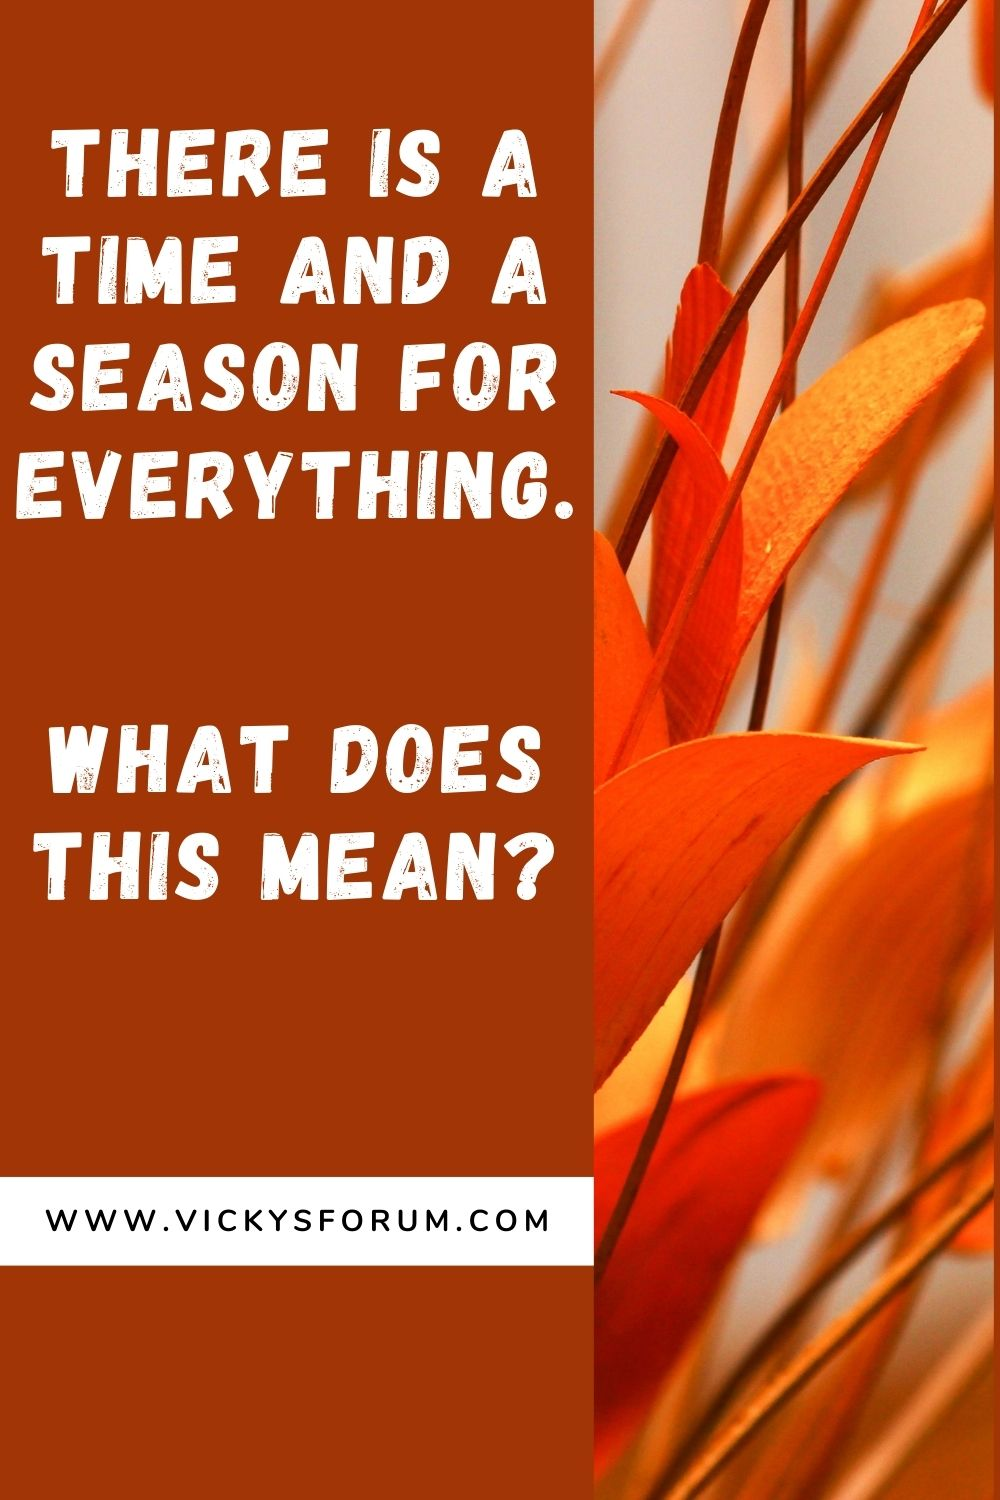 There is a time and a season for everything